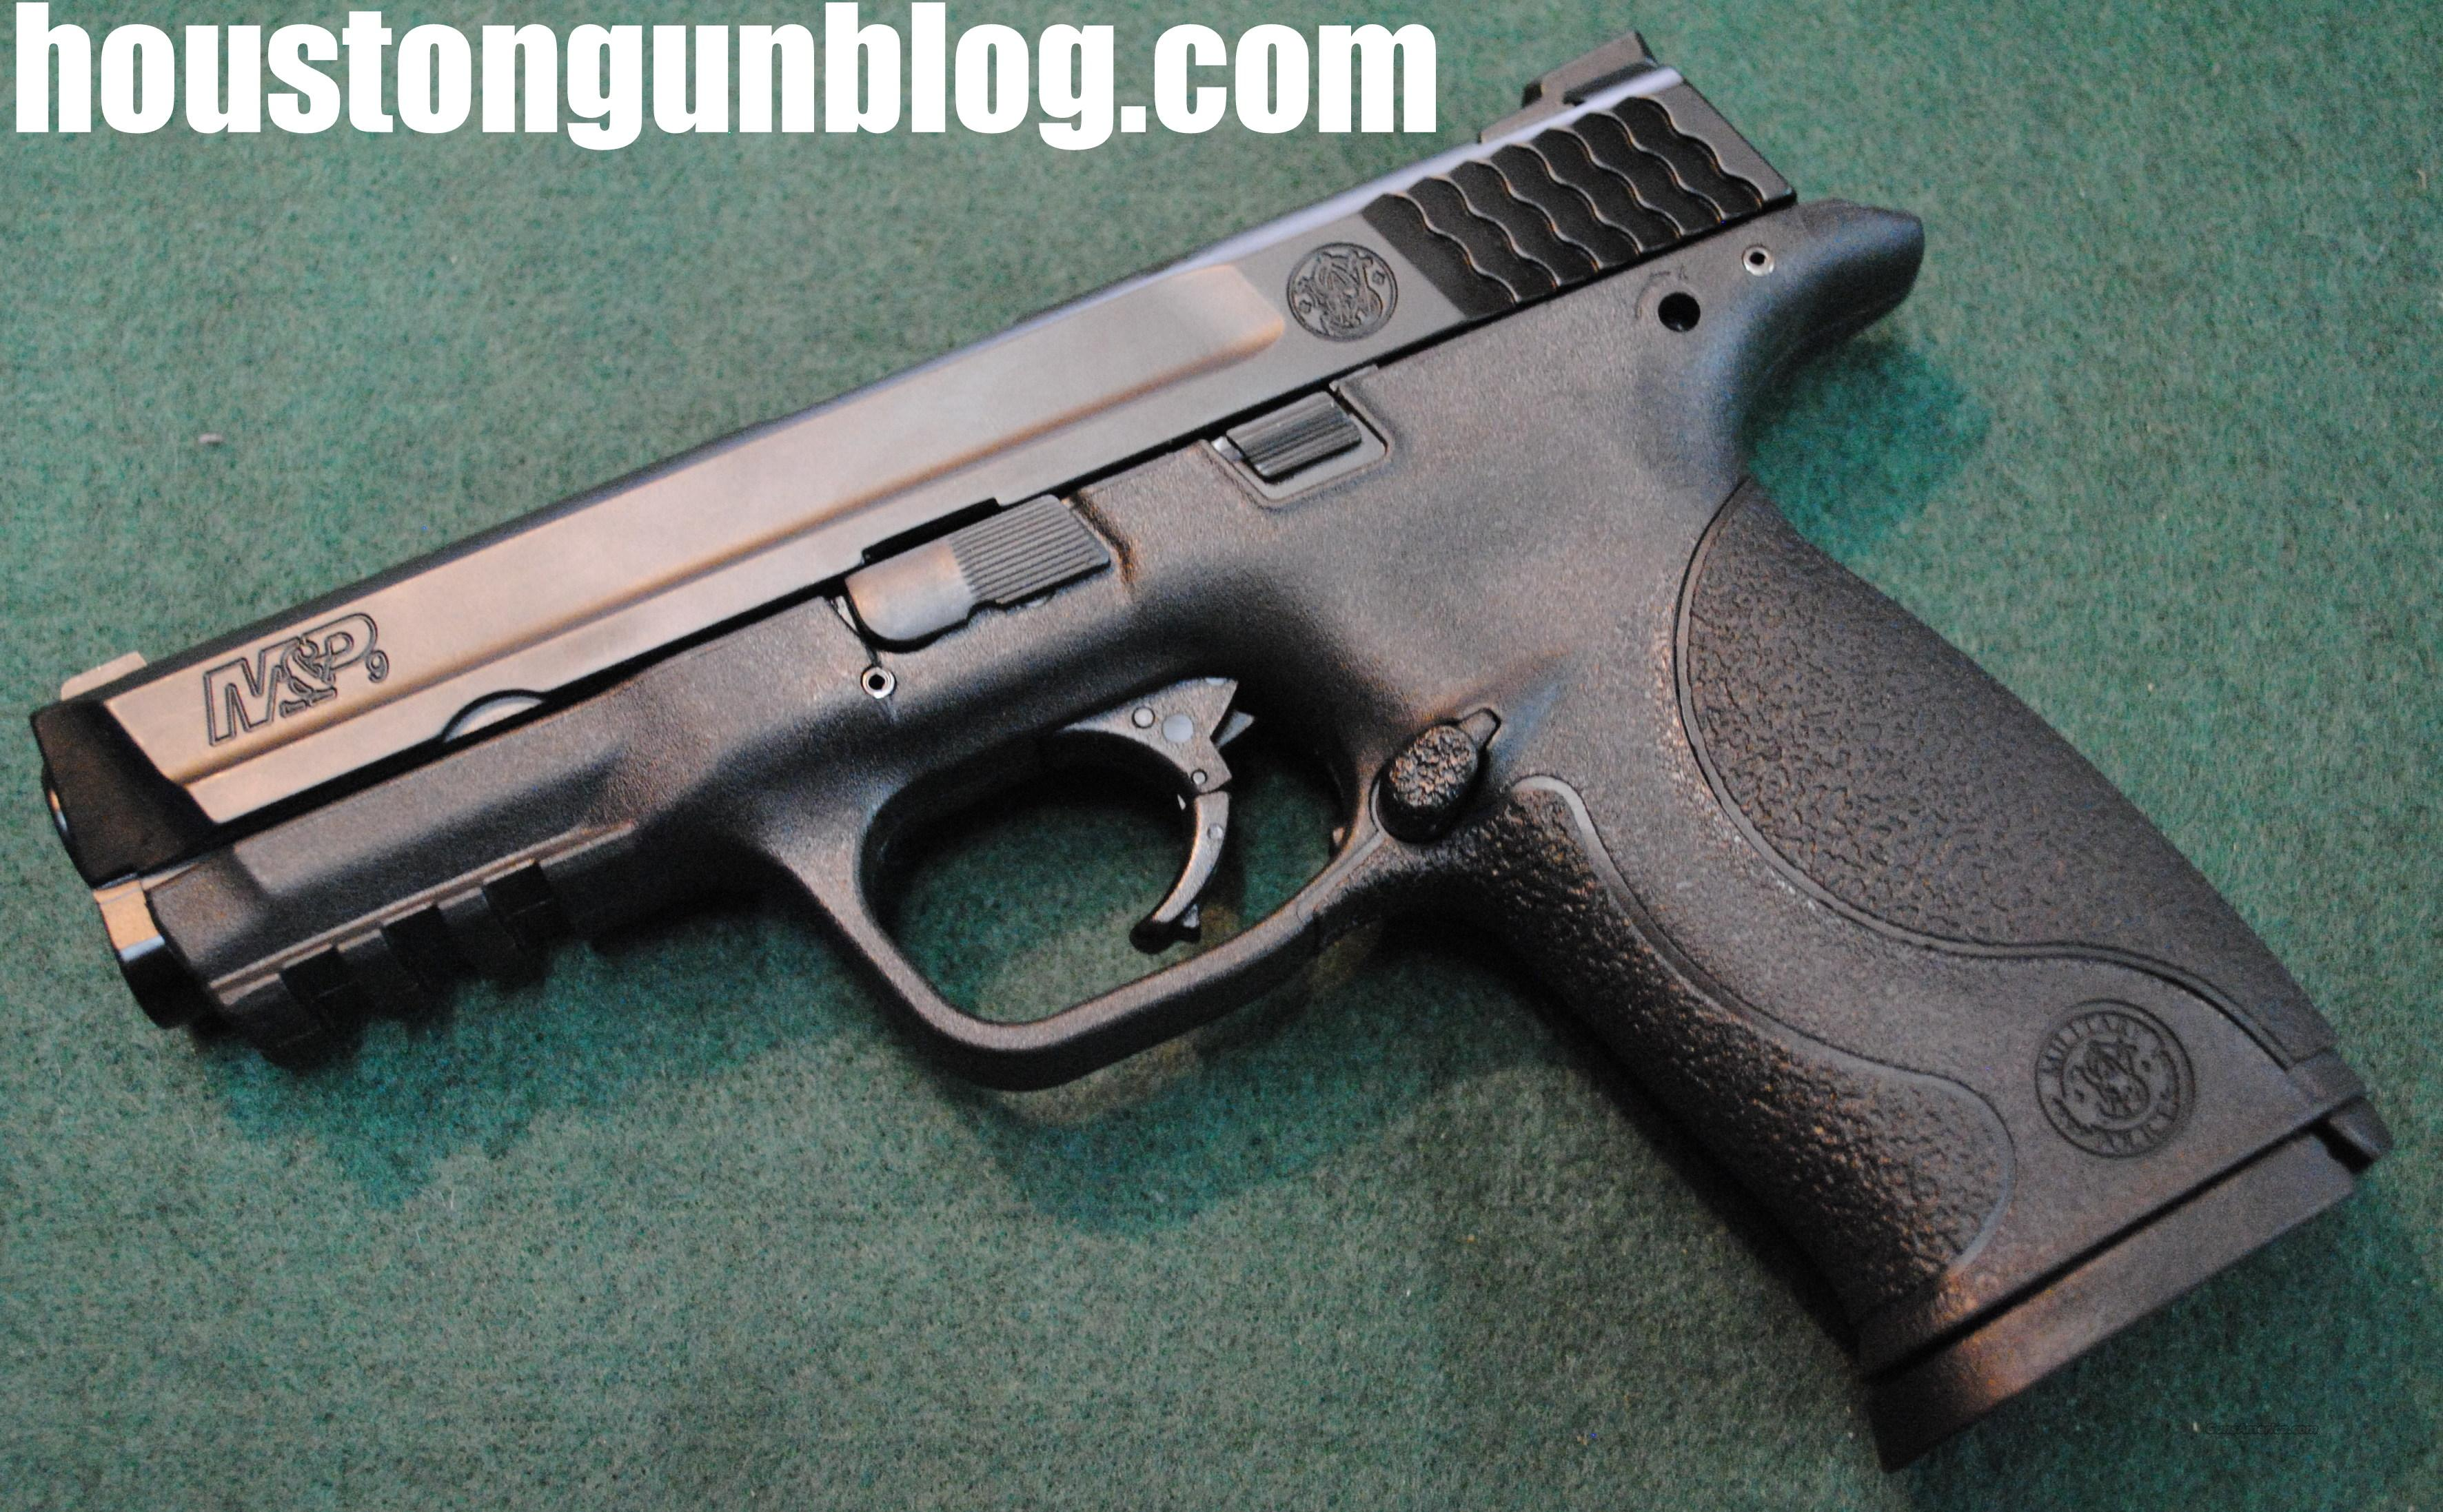 Smith and Wesson M&P 9mm Compact NIB  Guns > Pistols > Smith & Wesson Pistols - Autos > Polymer Frame